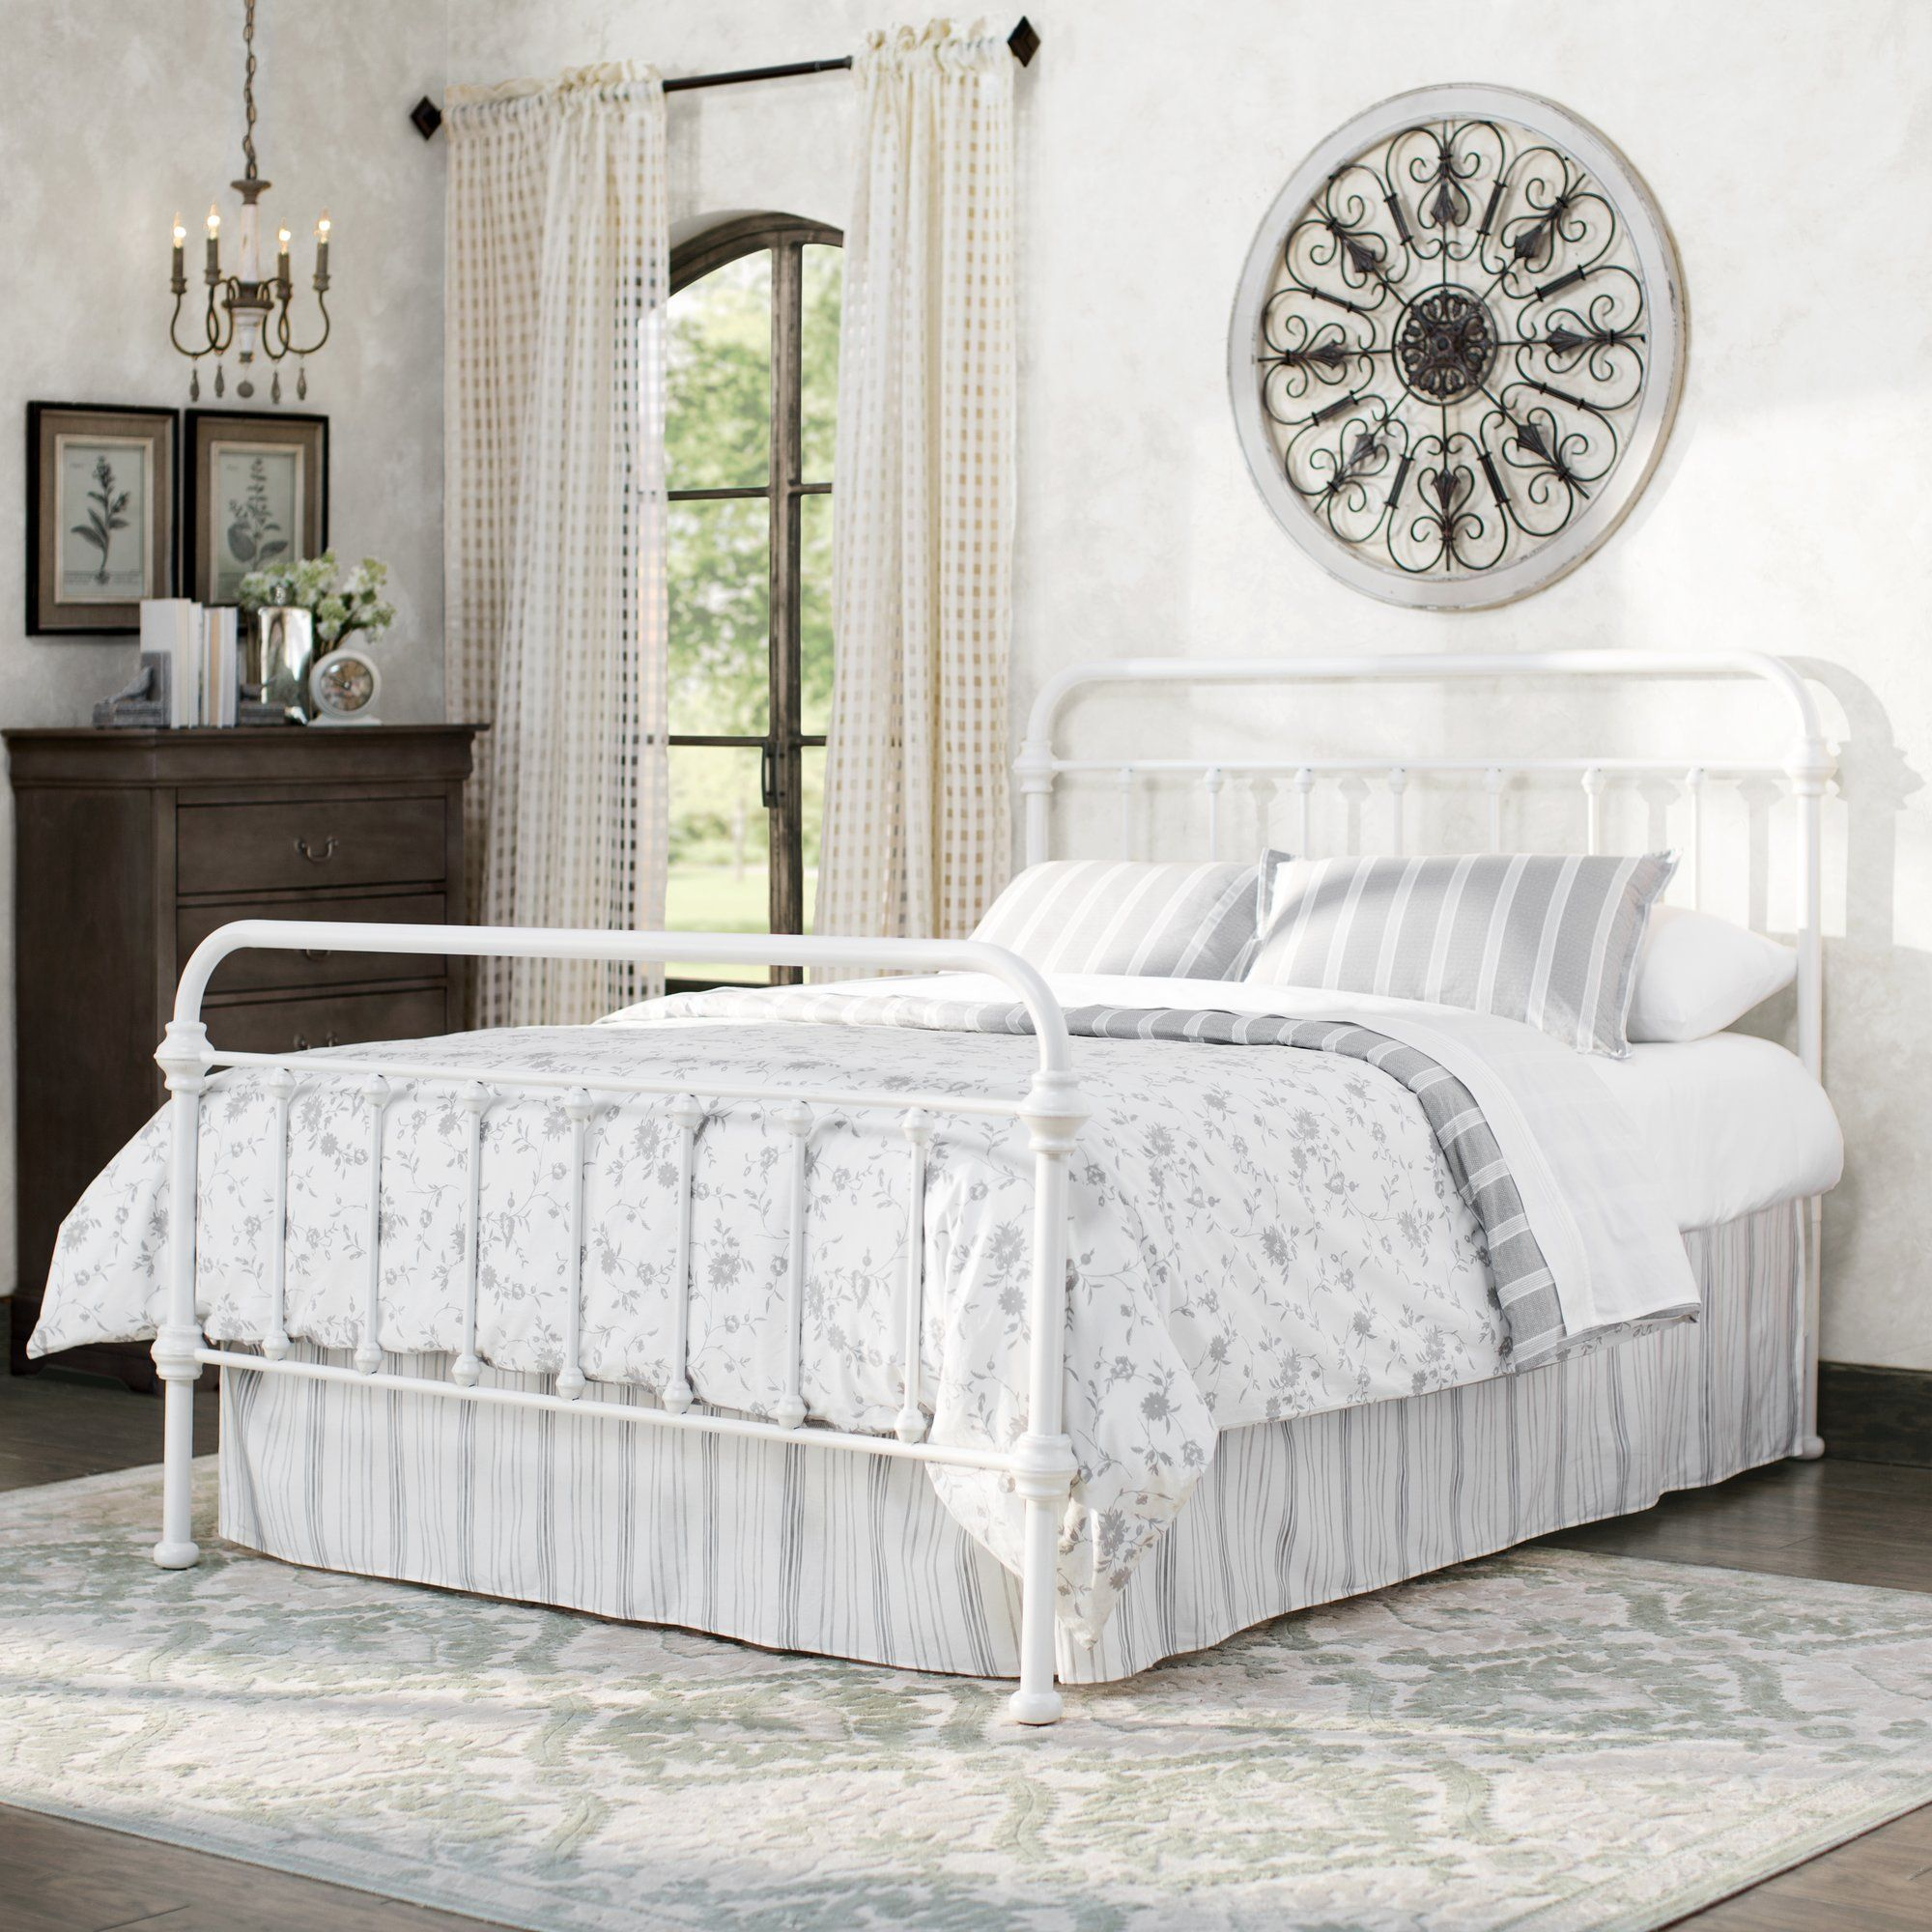 Cavaillon Standard Bed Panel bed, Metal beds, Headboards